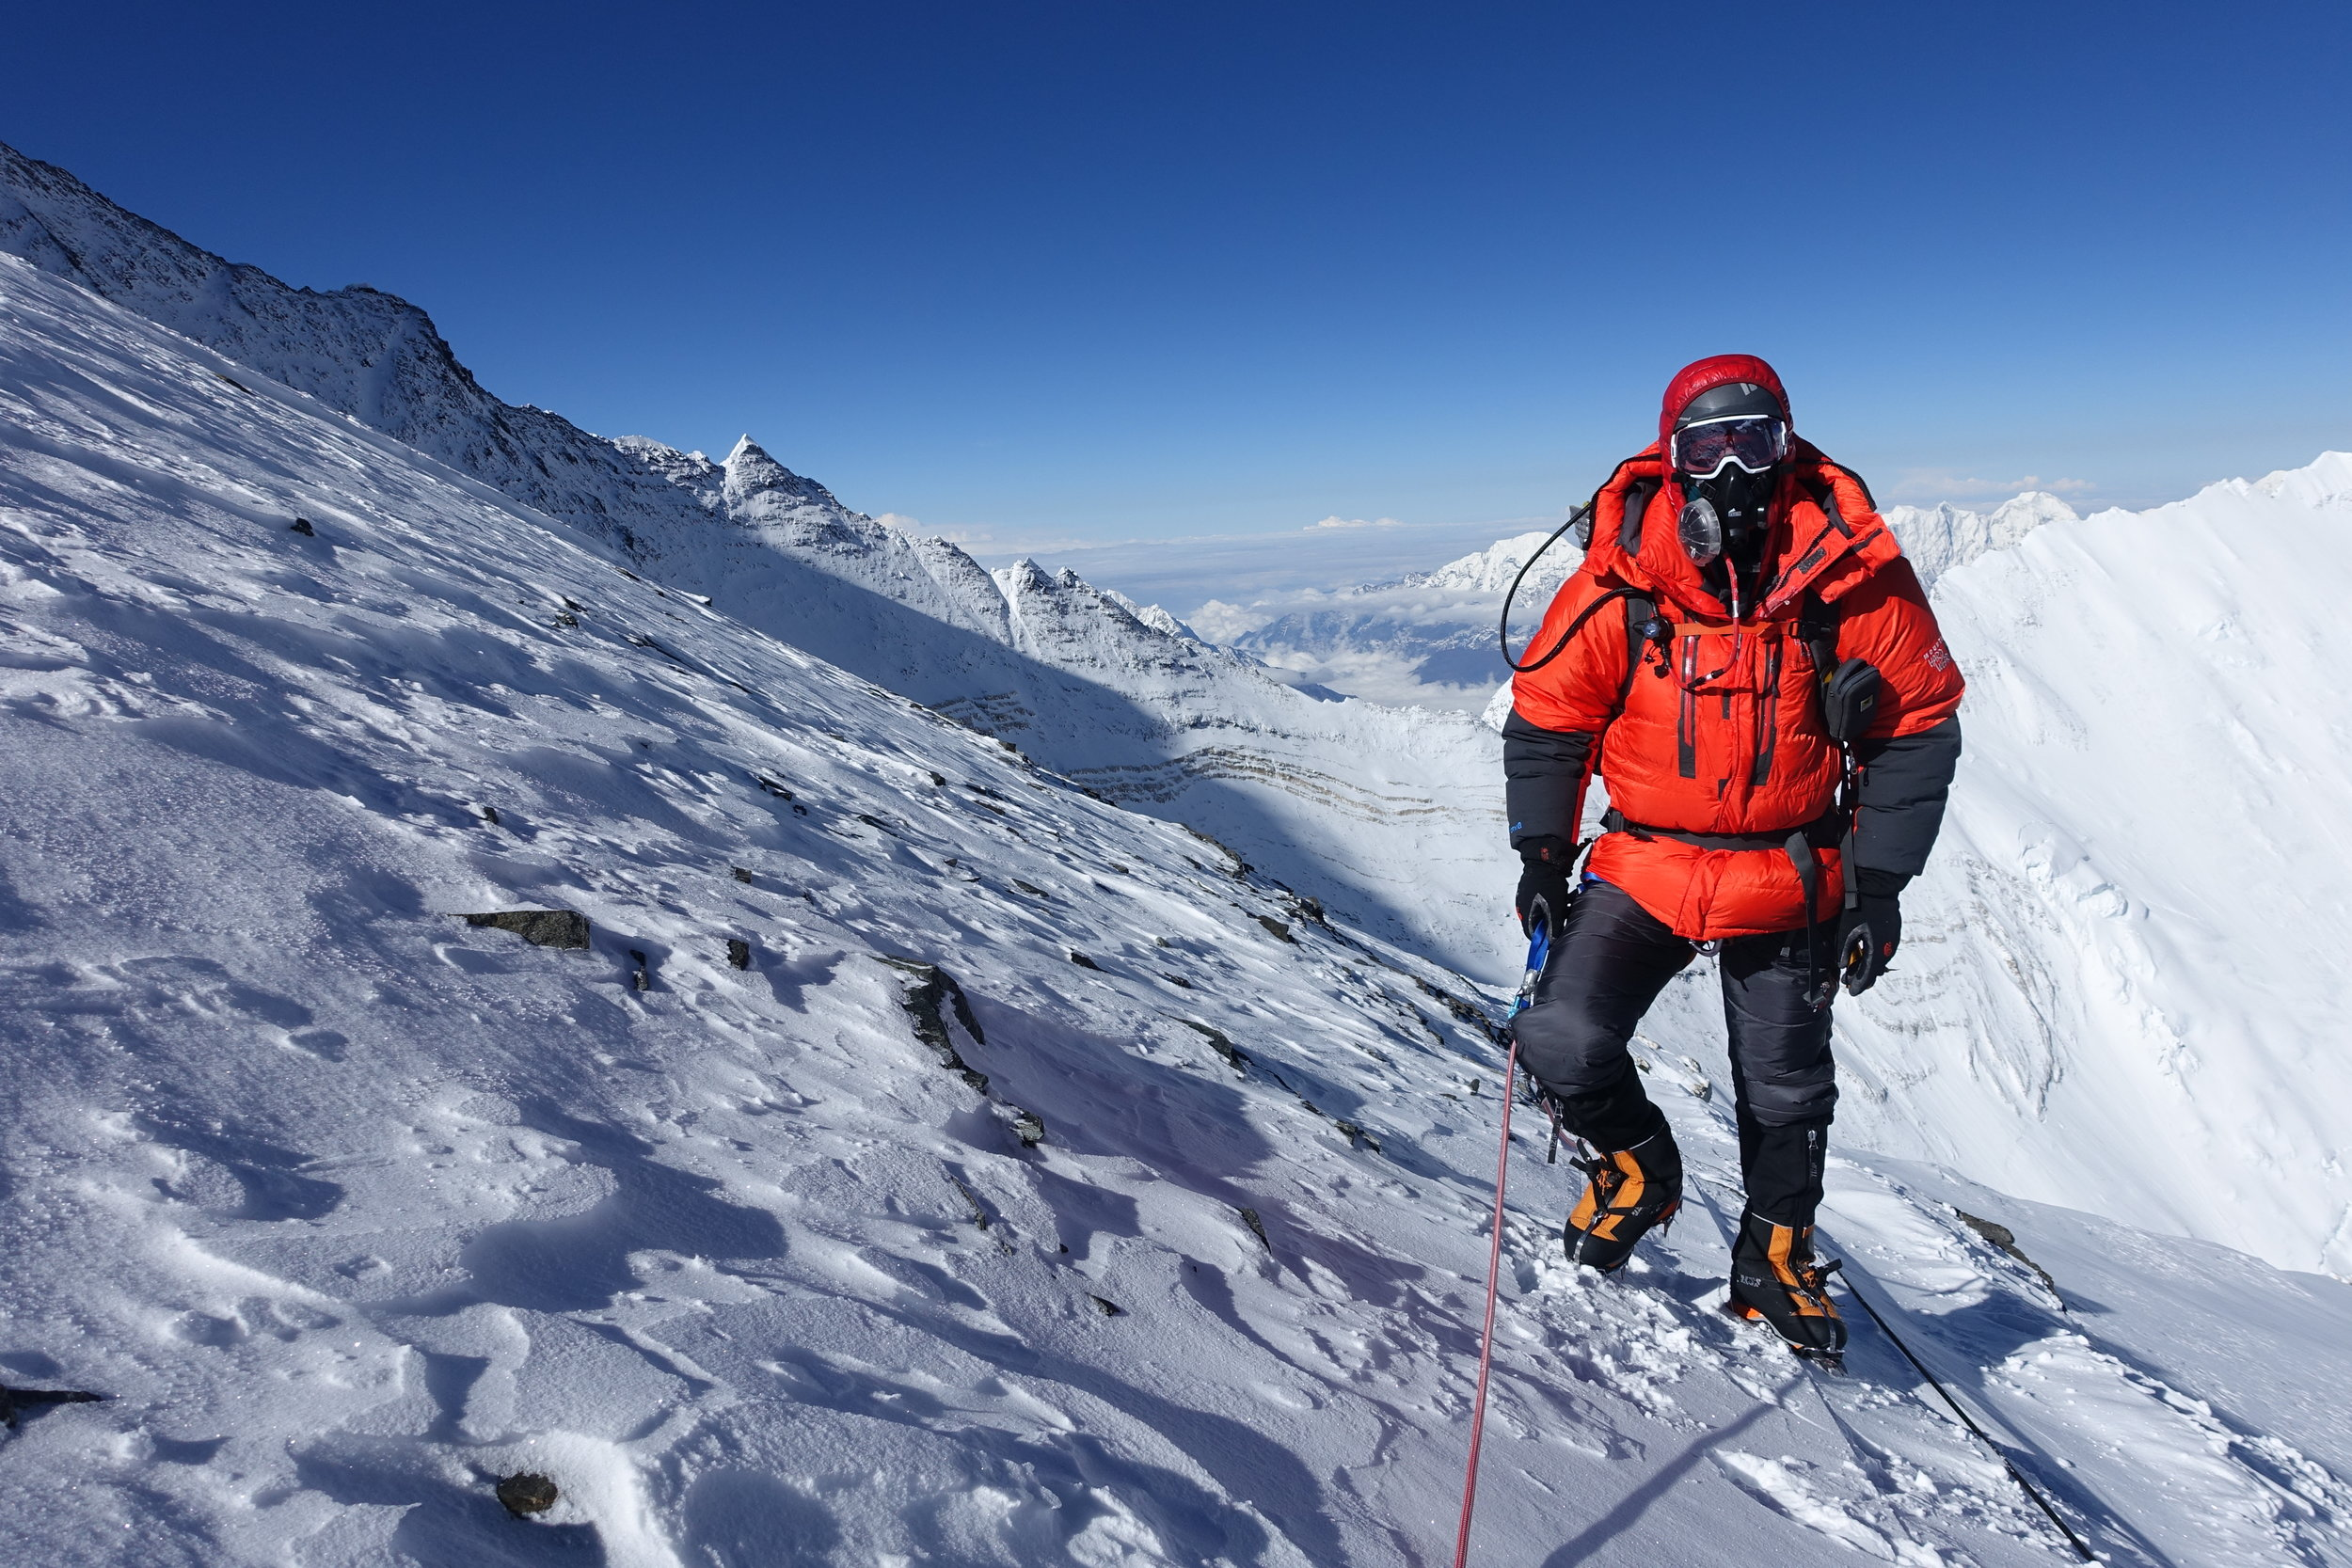 Entering the death zone at the Geneva Spur just before Camp 4 on Everest.